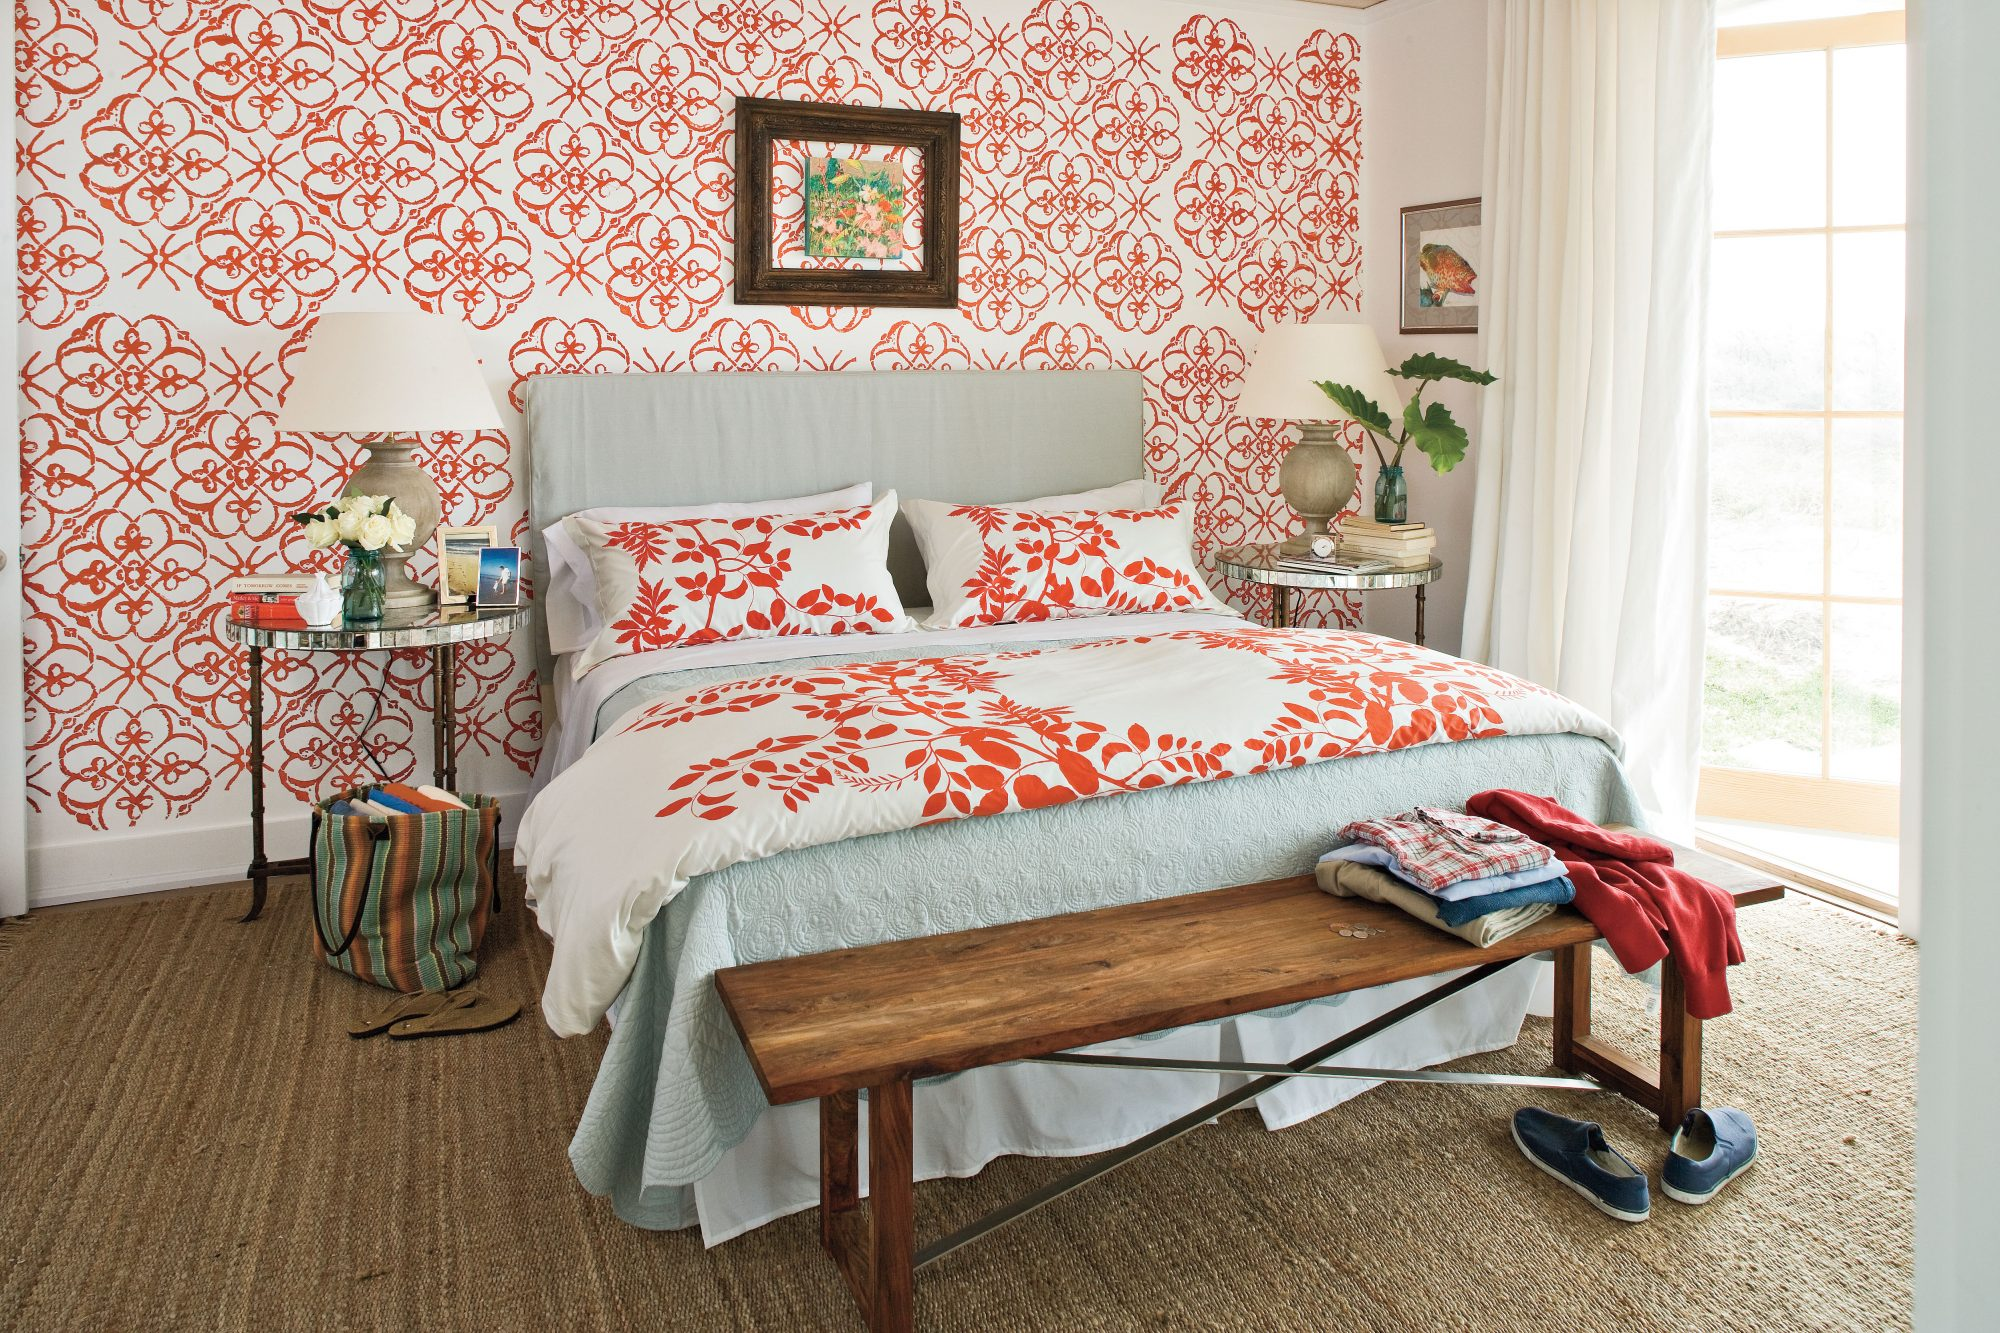 captivating beach chic master bedroom | Colorful Beach Bedroom Decorating Ideas - Southern Living